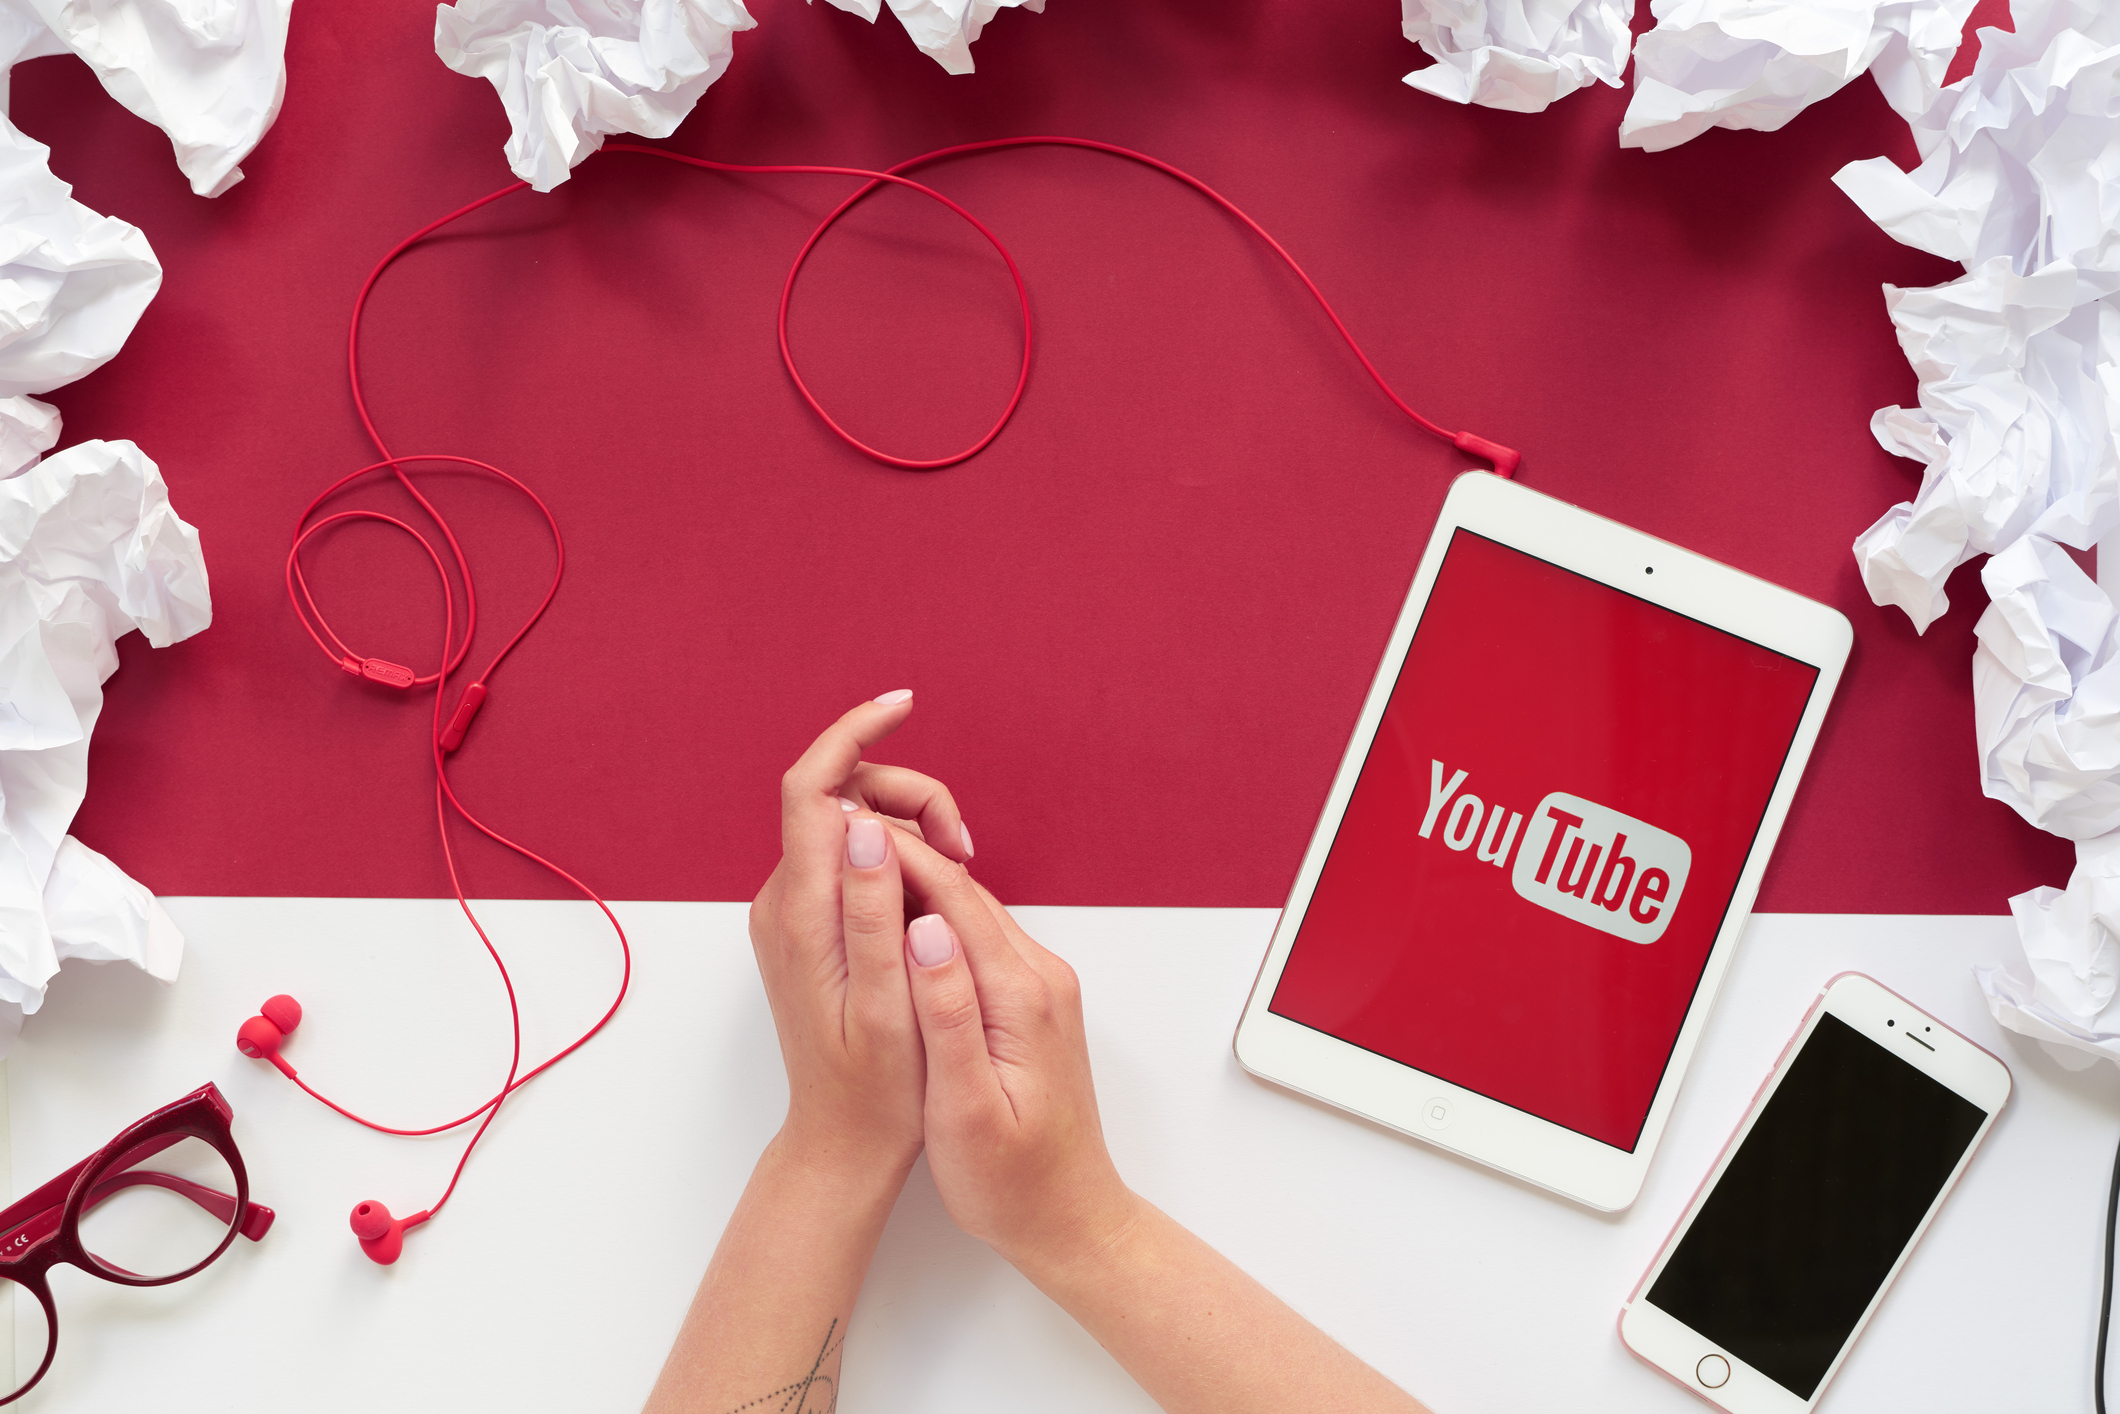 Directly above view of modern devices on table with crumpled papers, youtube sign on tablet screen